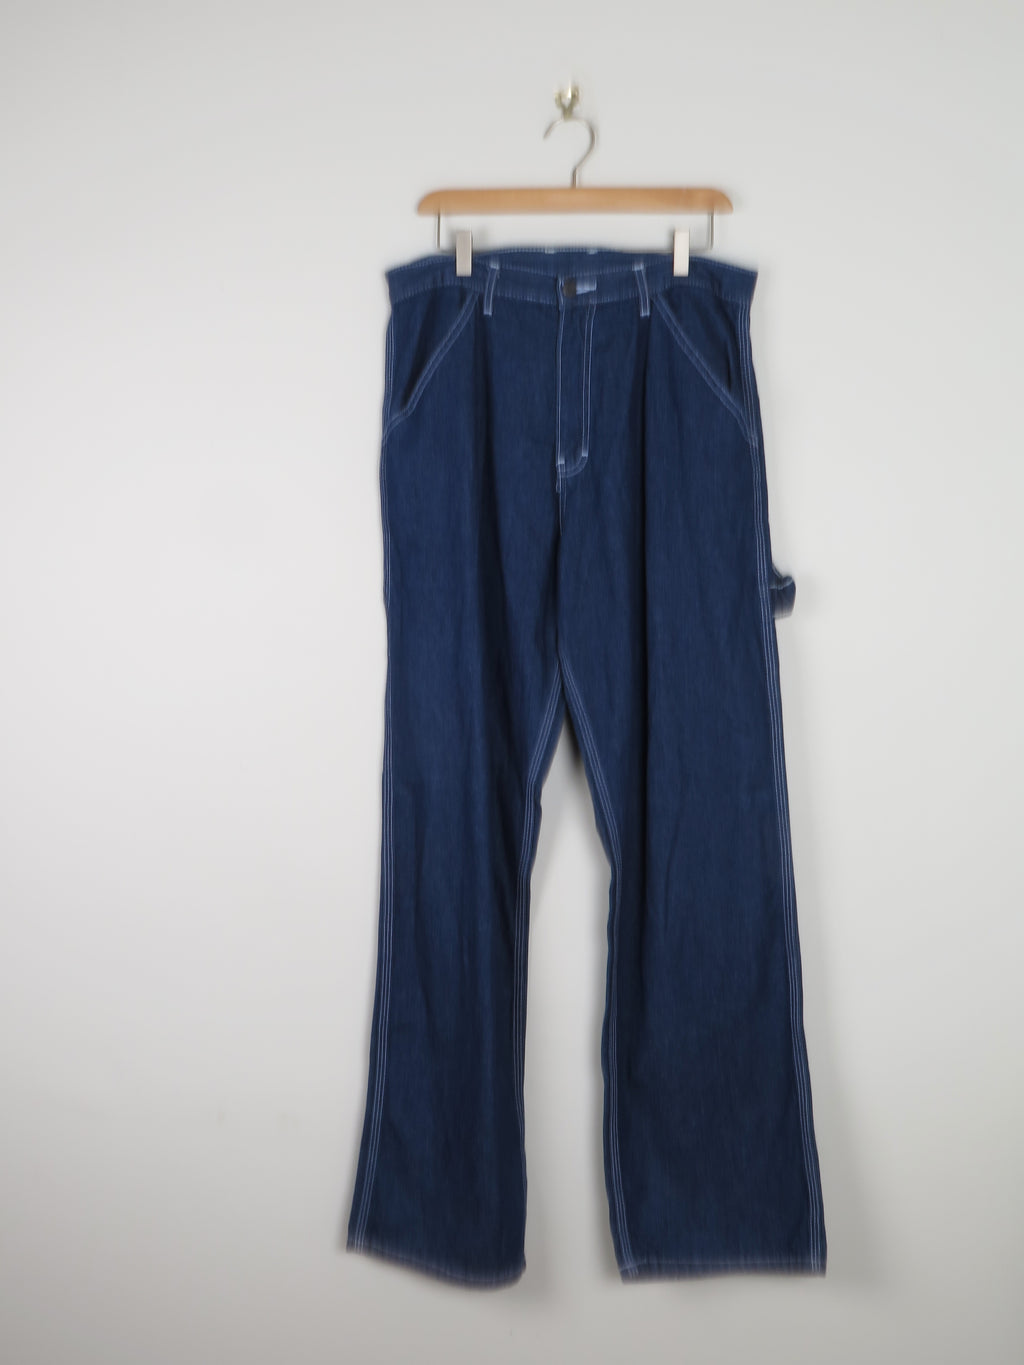 Workwear Carpenter Style Jeans New 32/33